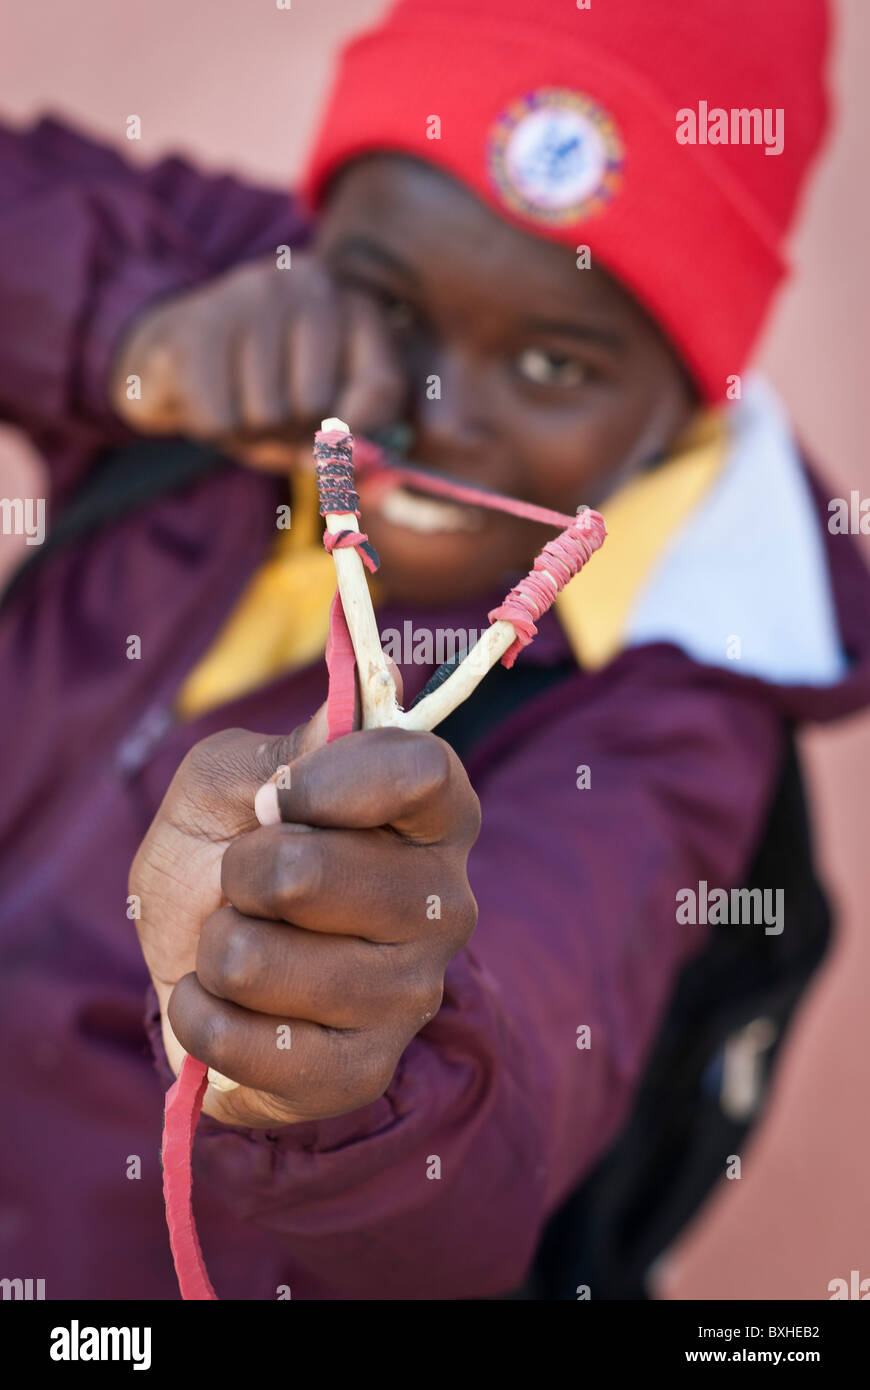 Boy aiming to the camera with his sling, Lüderitz, Namibia, Africa - Stock Image